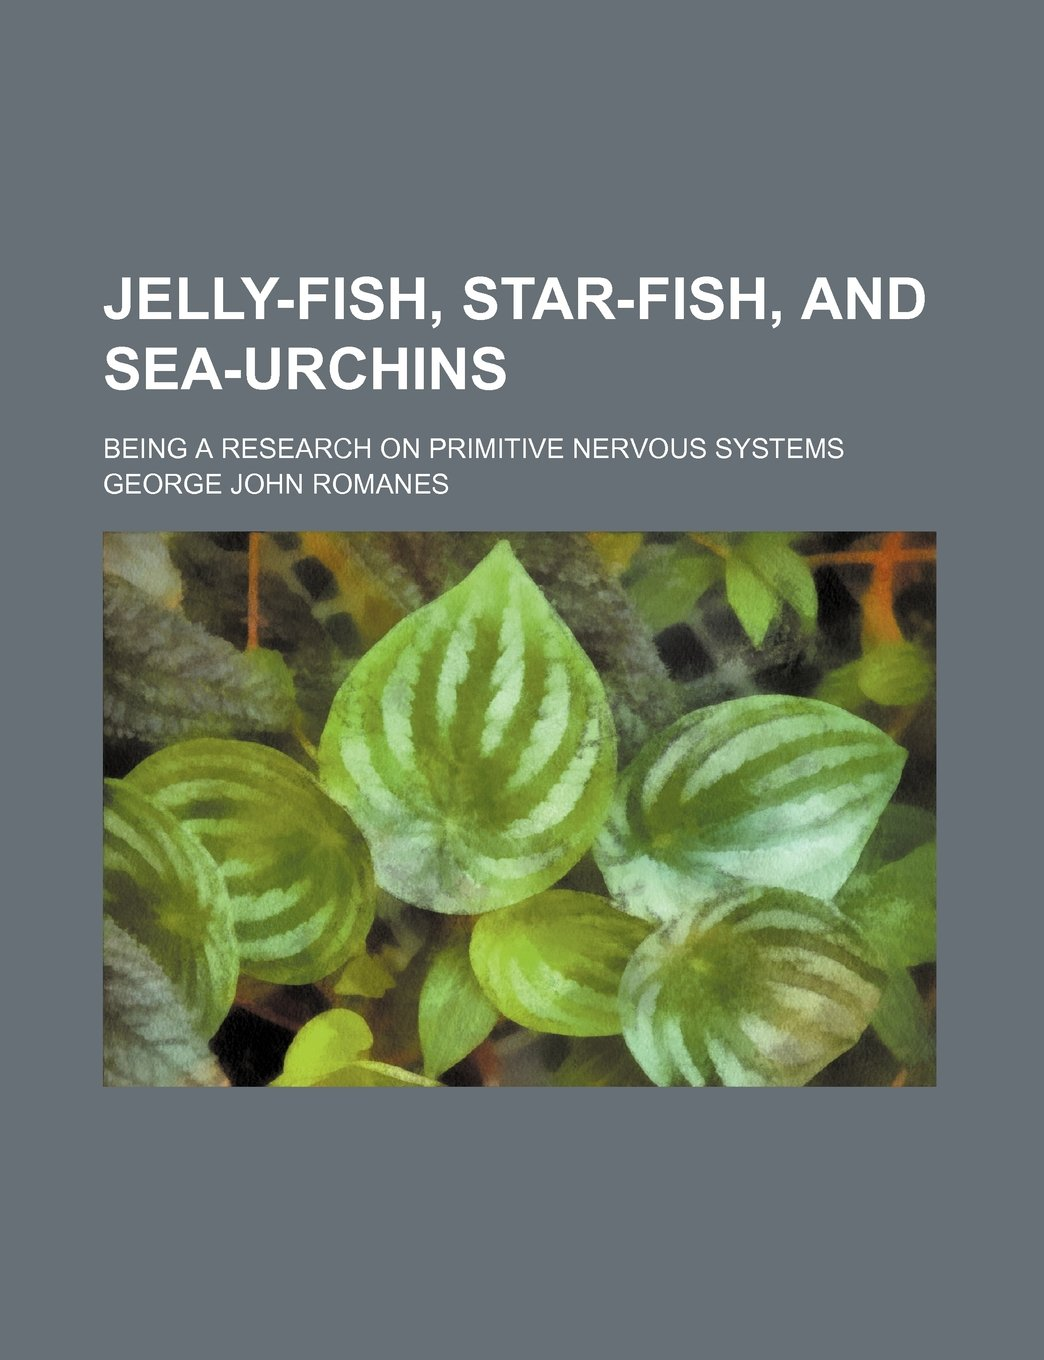 Read Online Jelly-fish, star-fish, and sea-urchins; Being a research on primitive nervous systems pdf